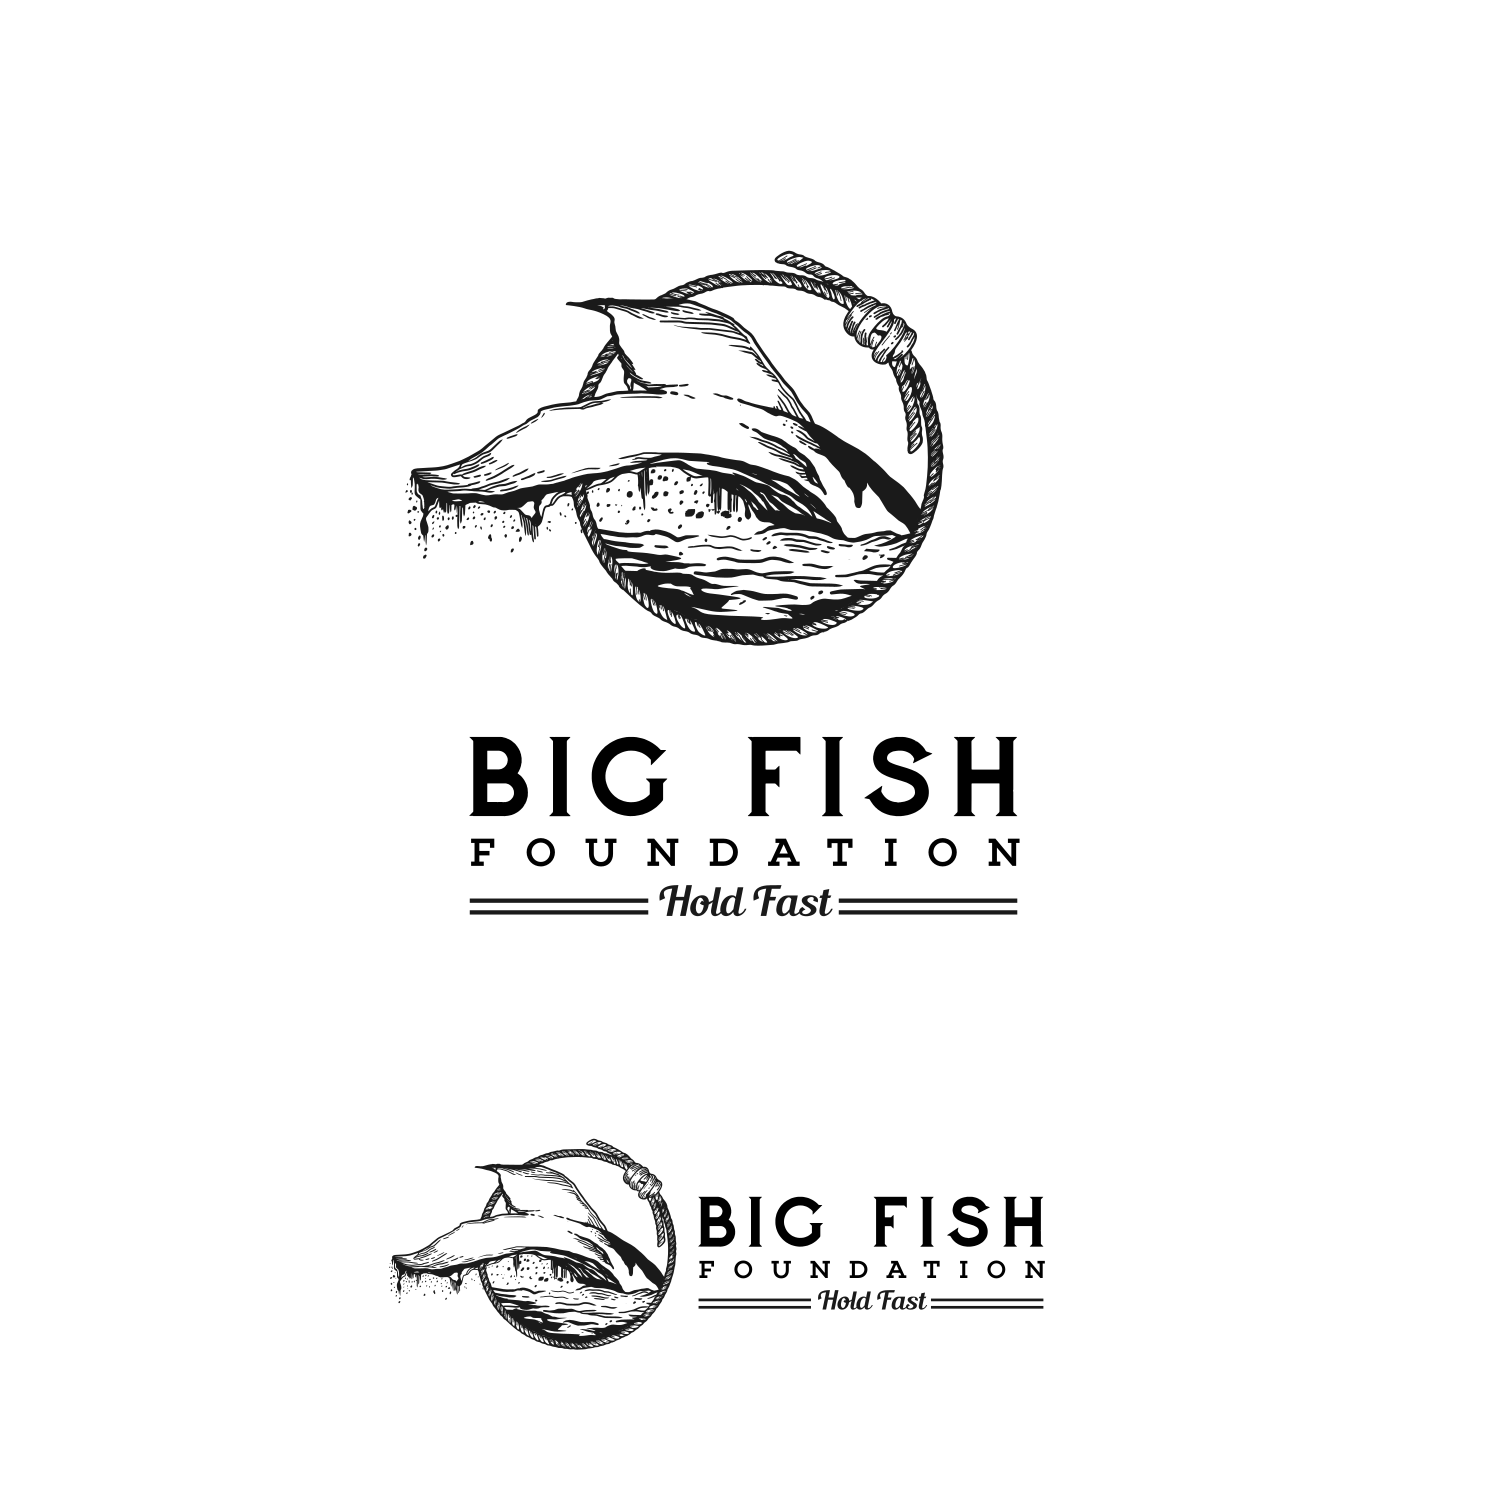 Big Fish Foundation (for veteran causes) branding opportunity